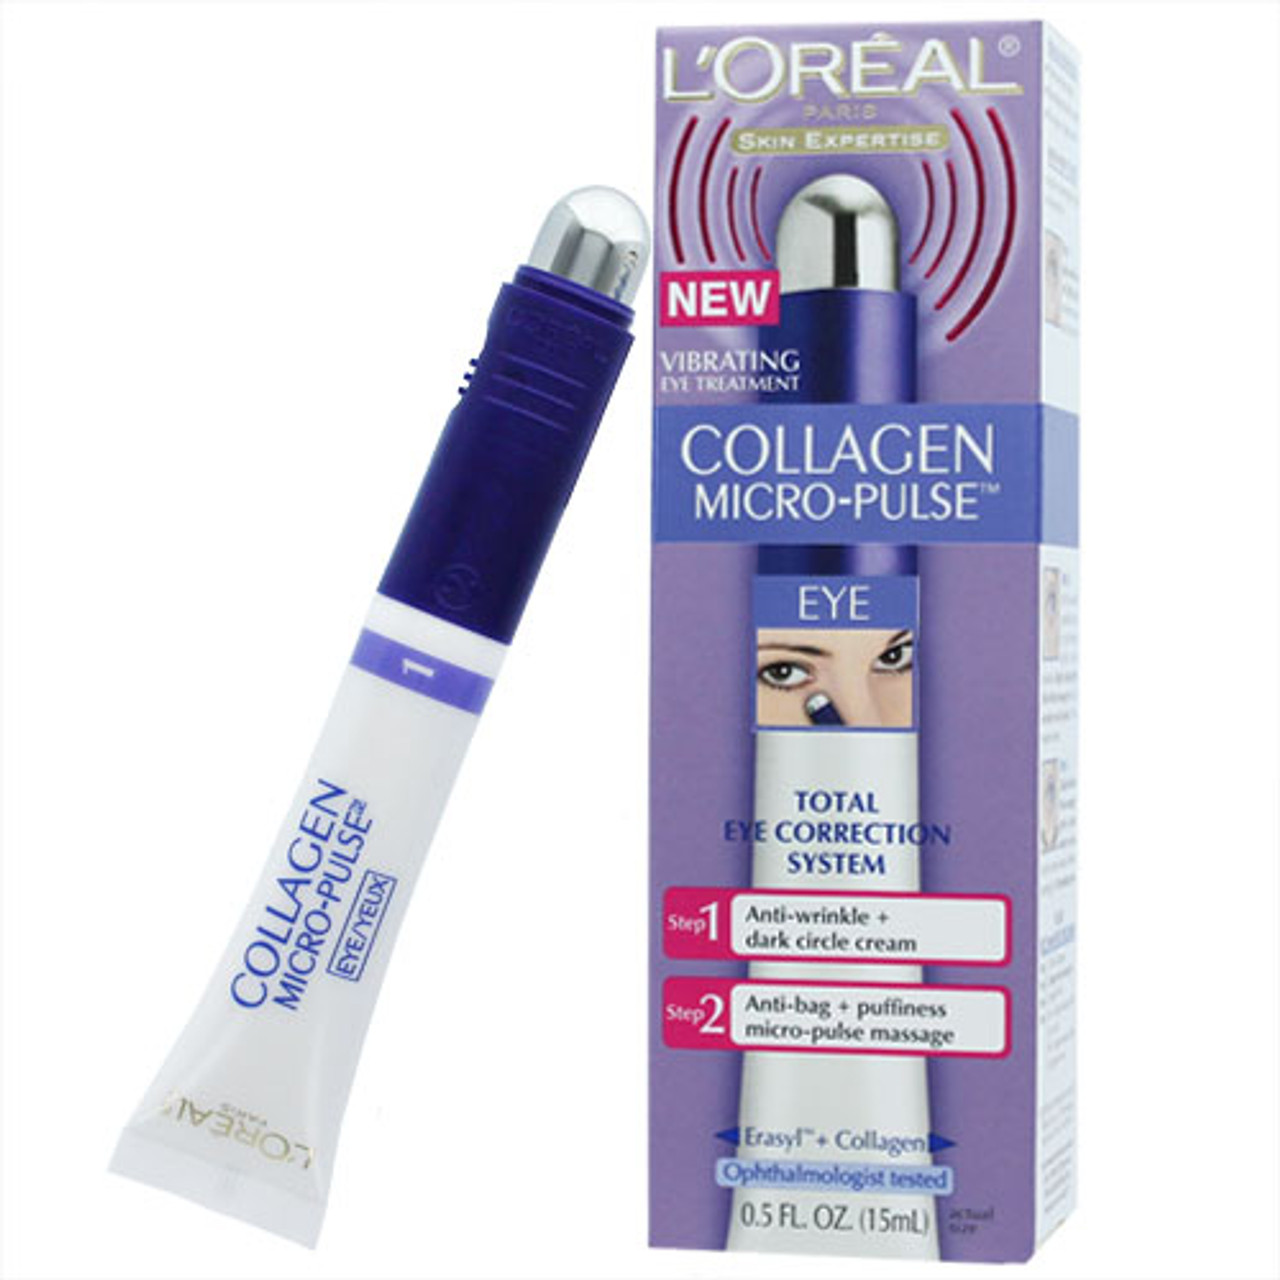 Loreal Collagen Micro-Pulse Vibrating Eye Treatment